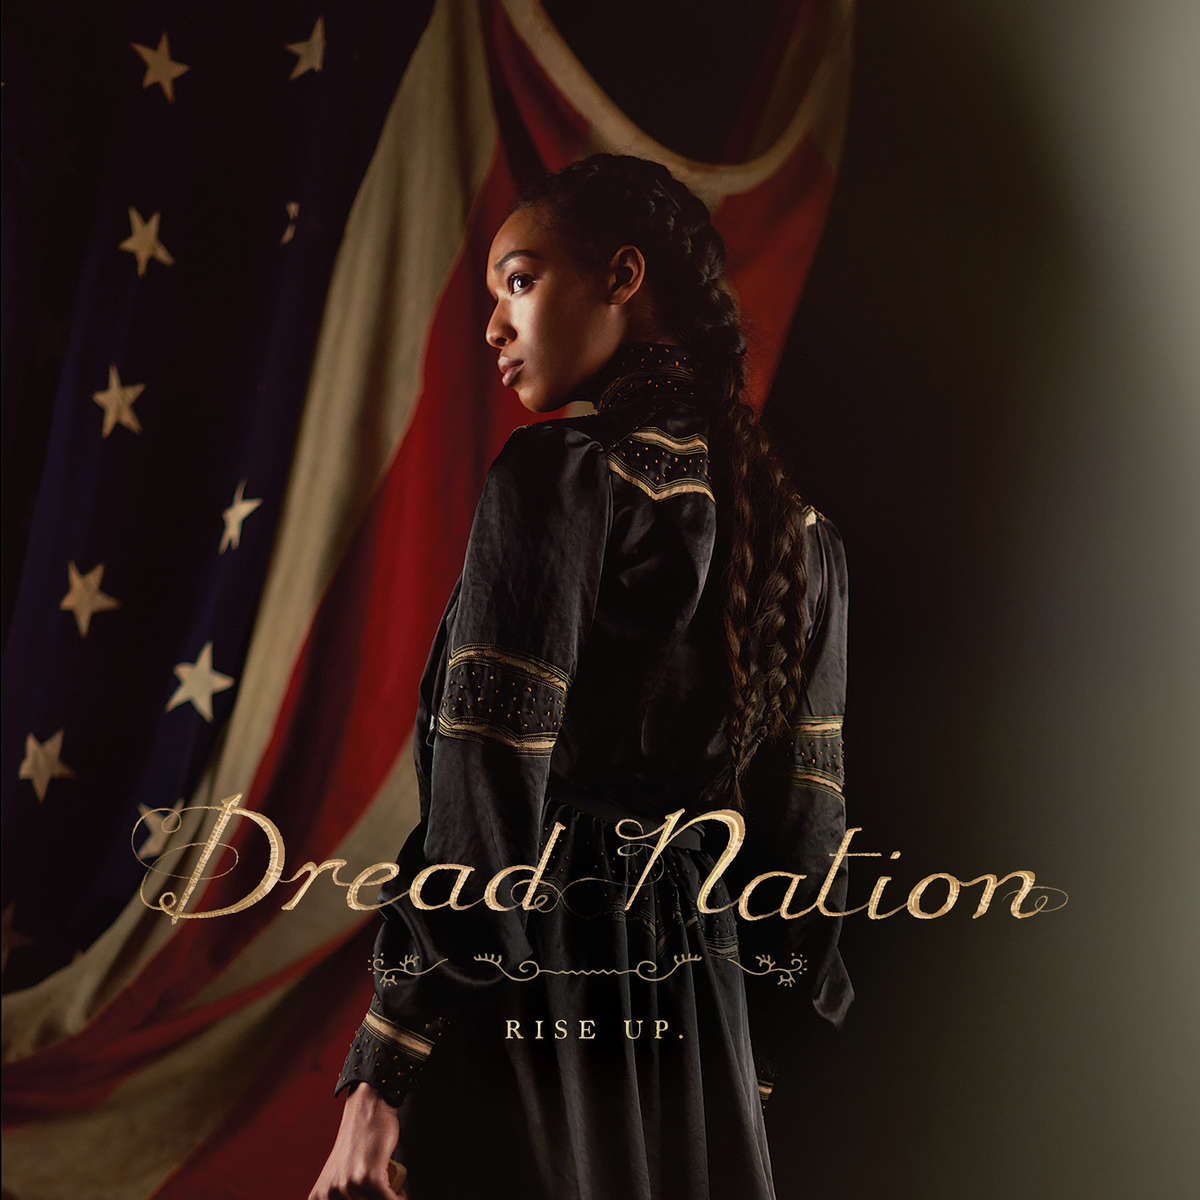 dread_nation_cover.jpg